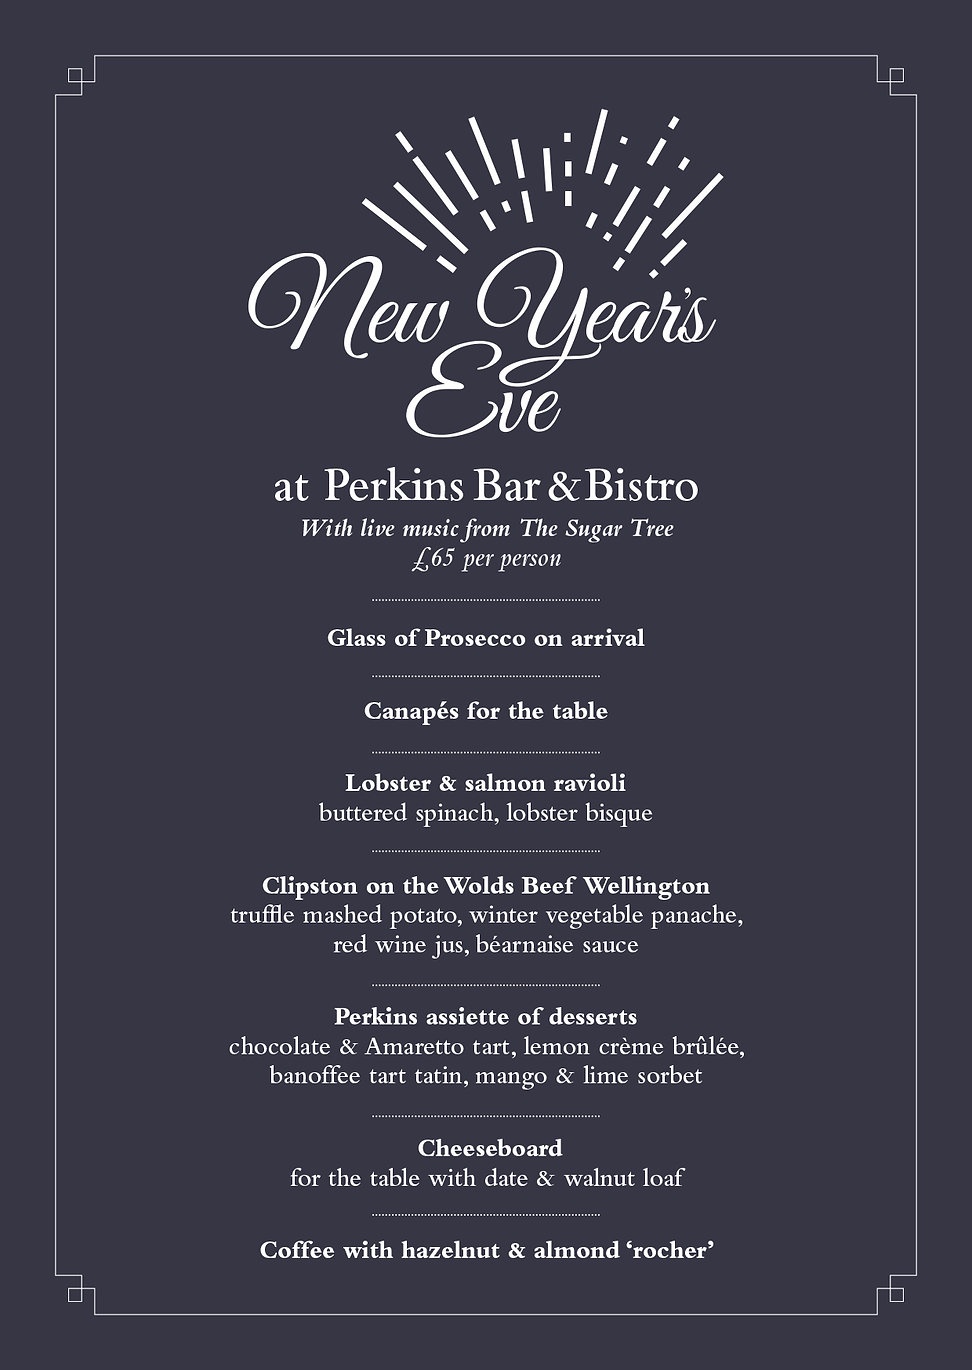 new years eve menu.jpg